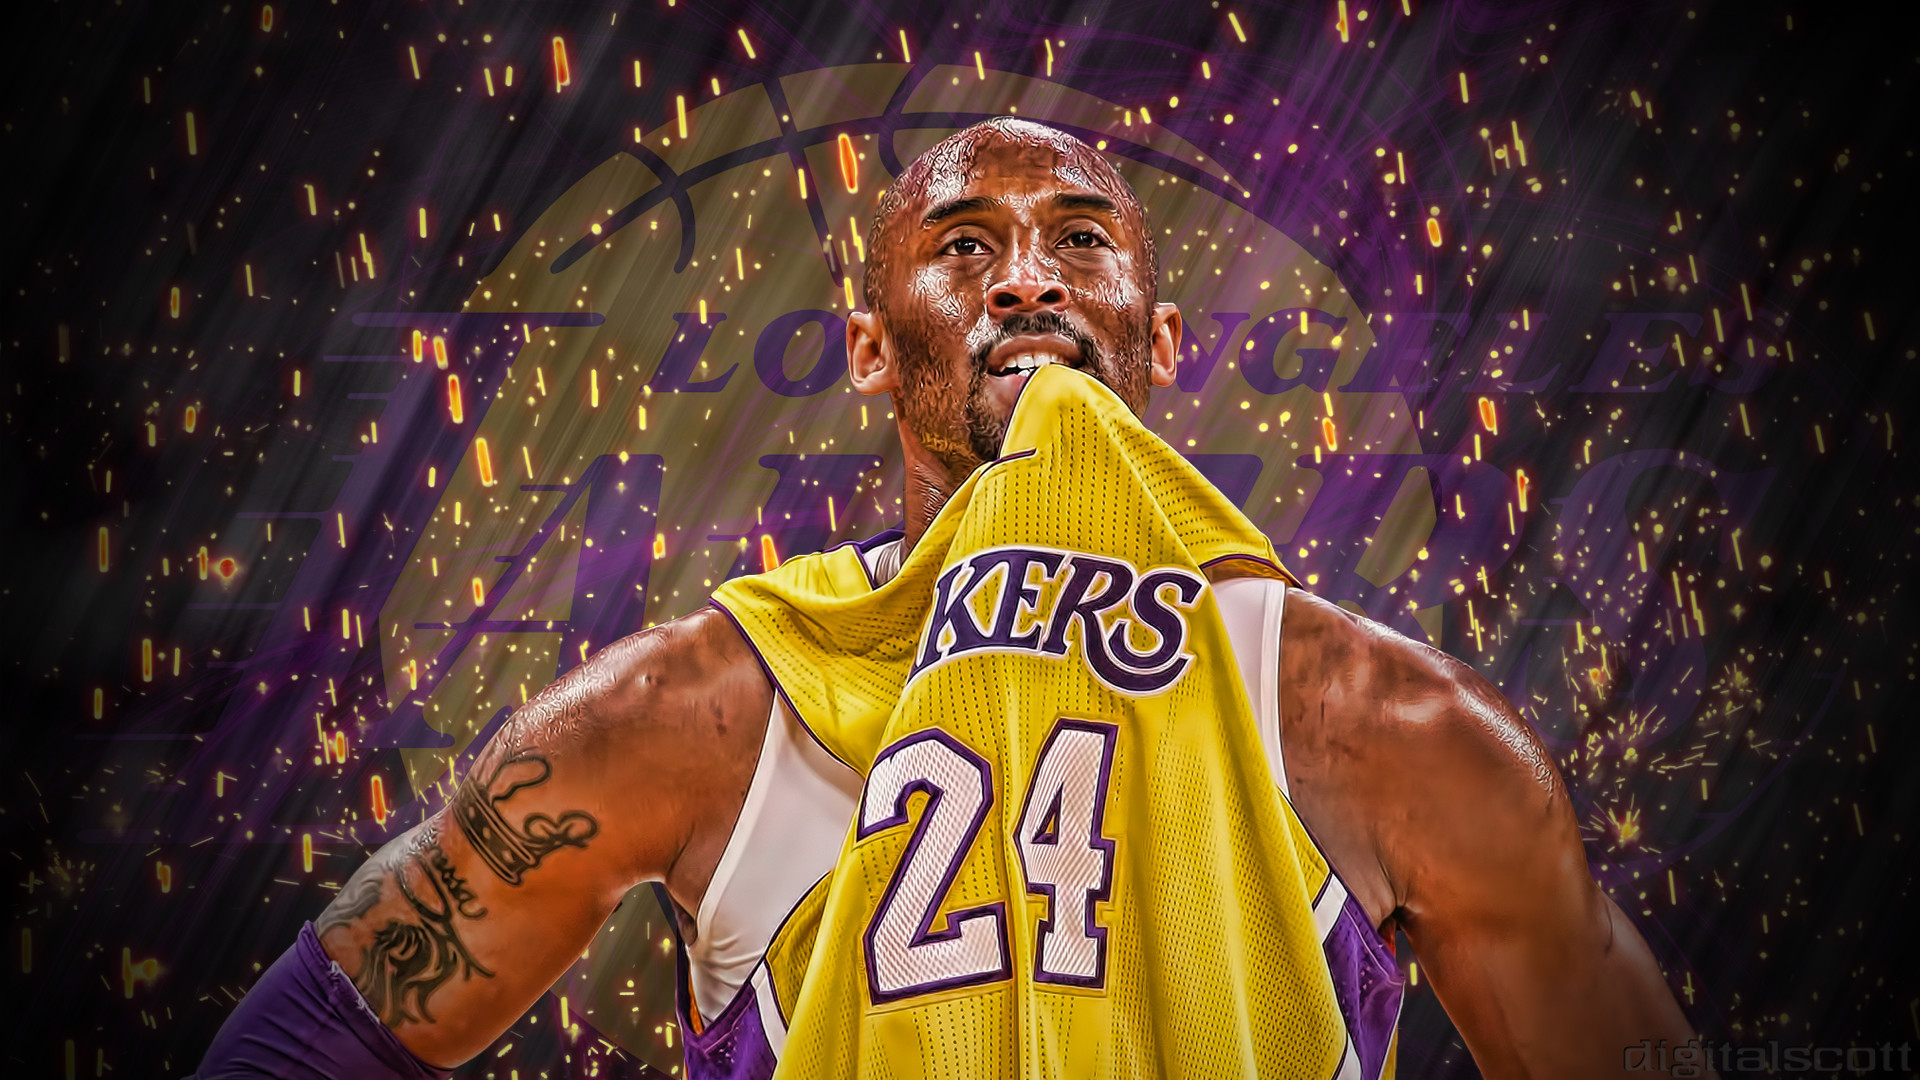 2k Wallpapers For Iphone X Kobe Bryant Dunk Wallpaper 70 Images